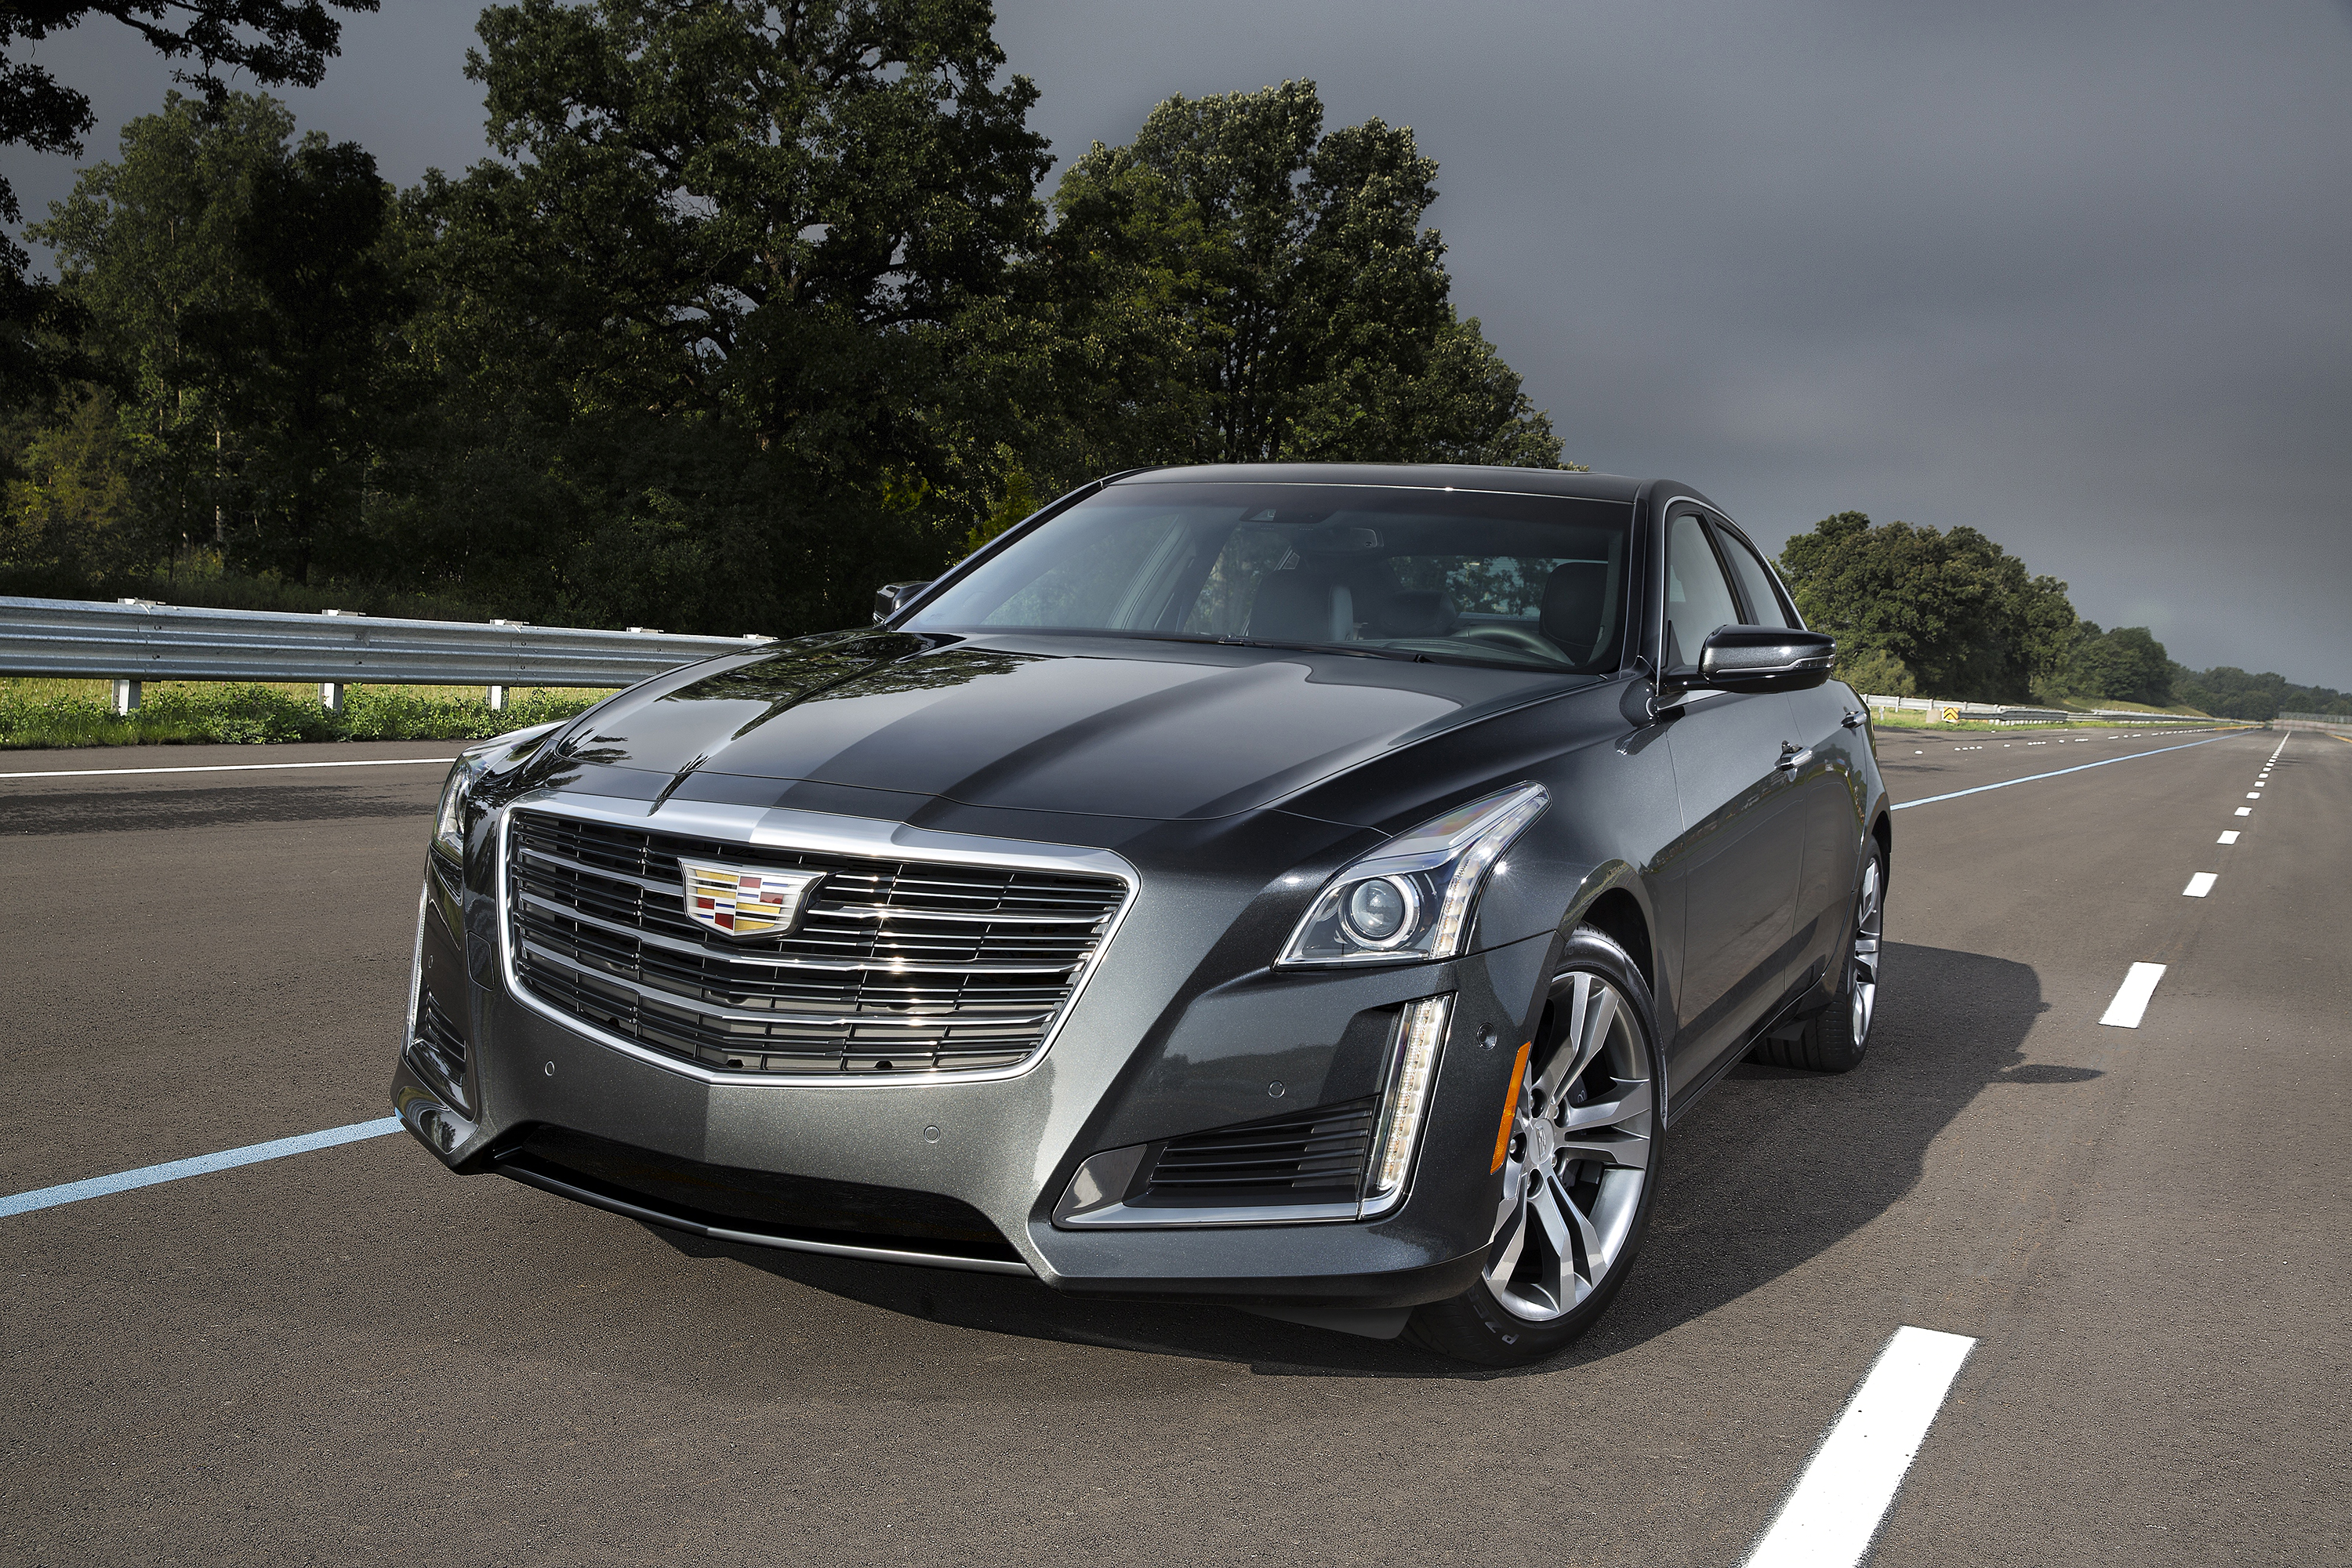 detail media crossover vehicles cars europe cadillac photos galleries pages pressroom passenger en intl content